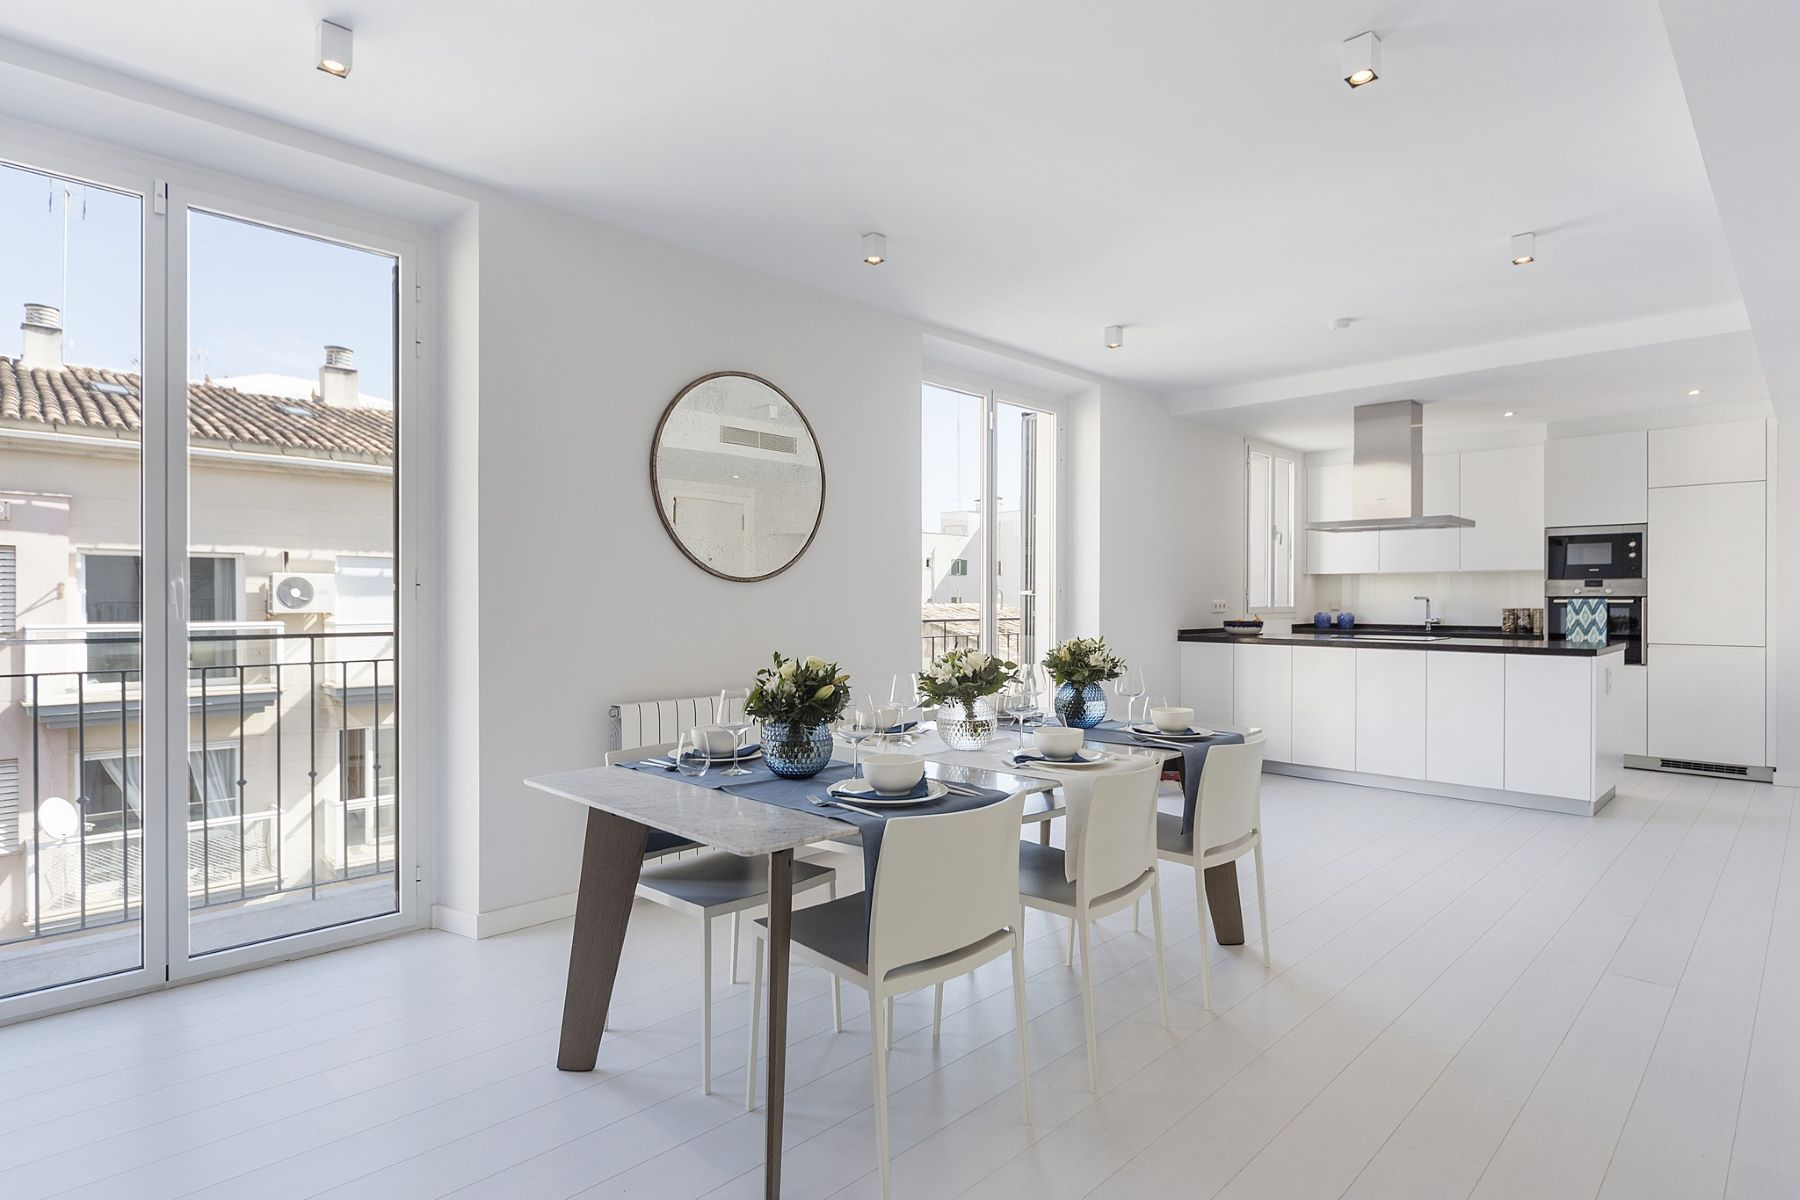 Single Family Home for Sale at New penthouse with a terrace in Santa Catalina Palma De Mallorca, Balearic Islands, Spain